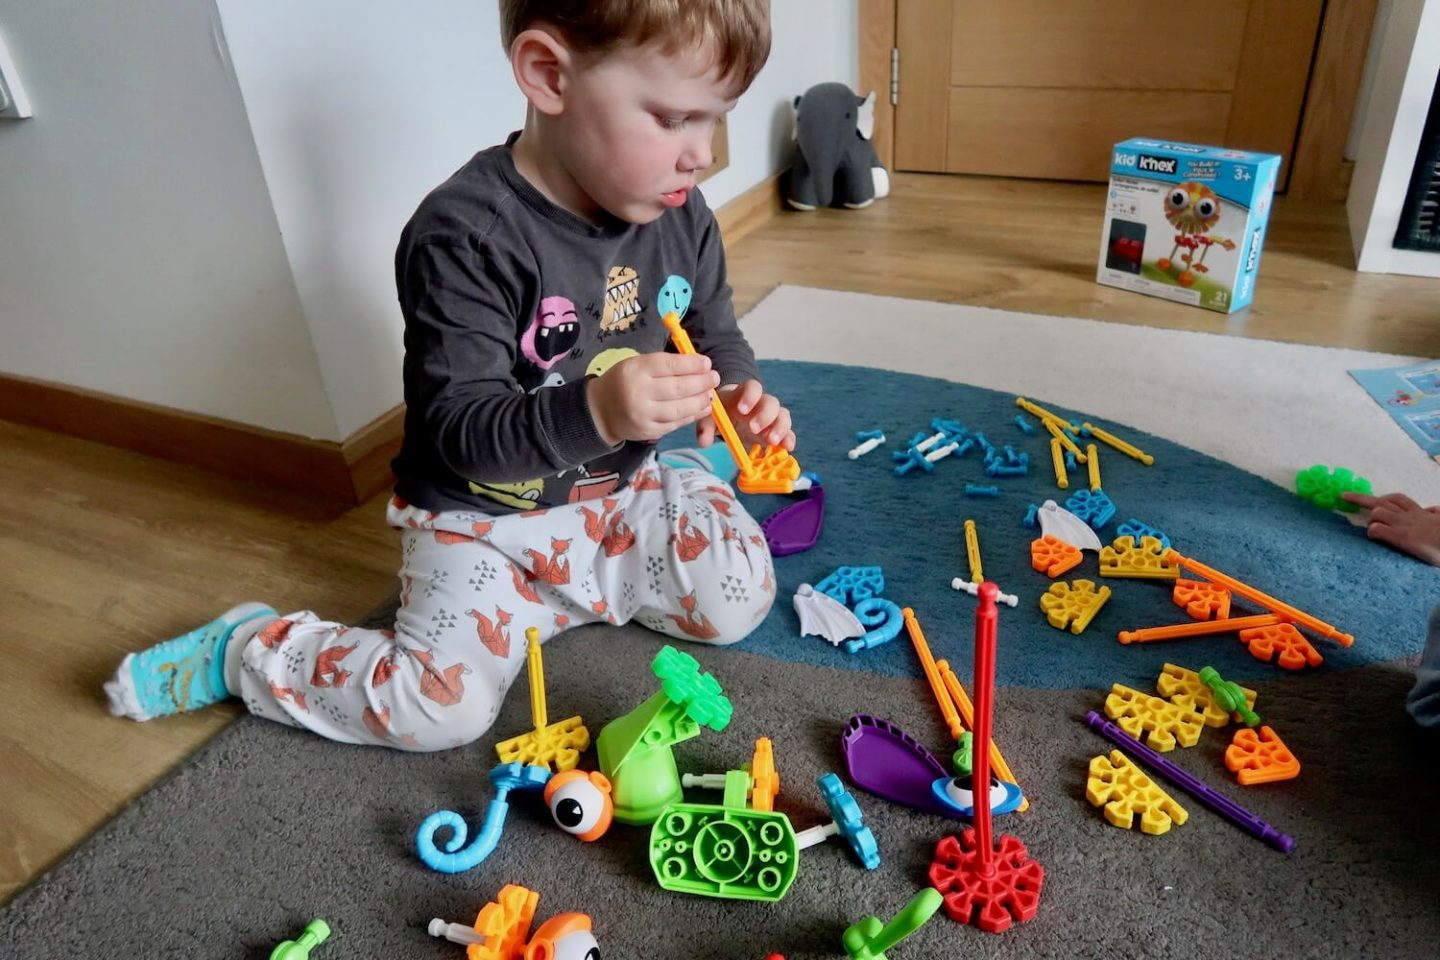 A child sitting on the floor surrounded by Kid K'Nex pieces